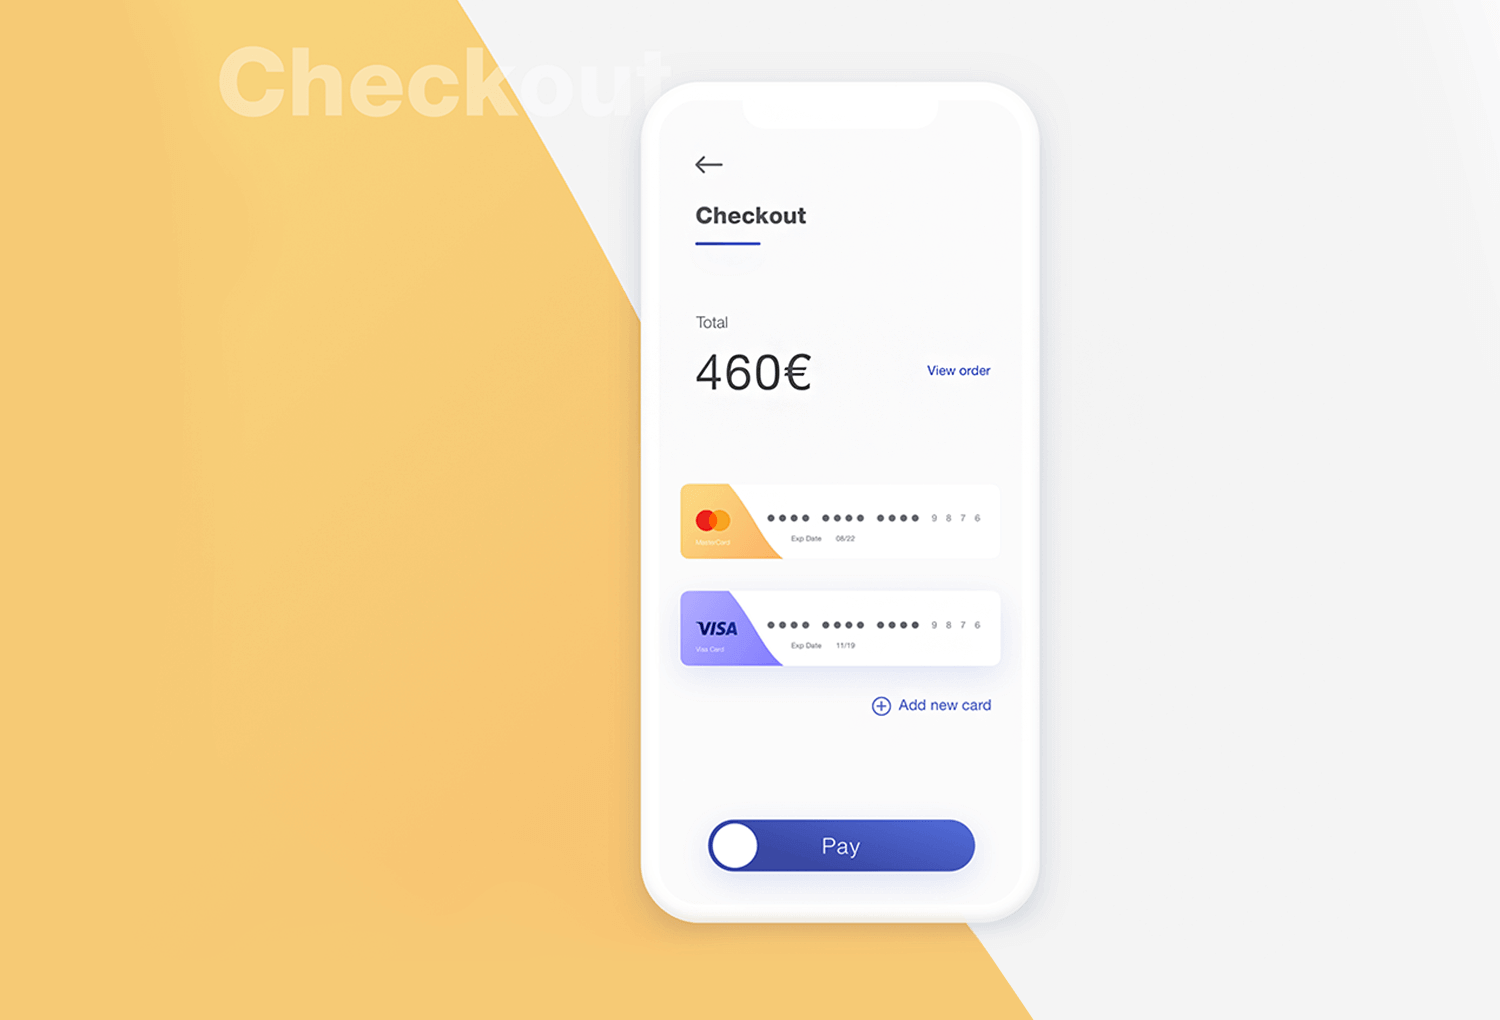 form example of checkout screen